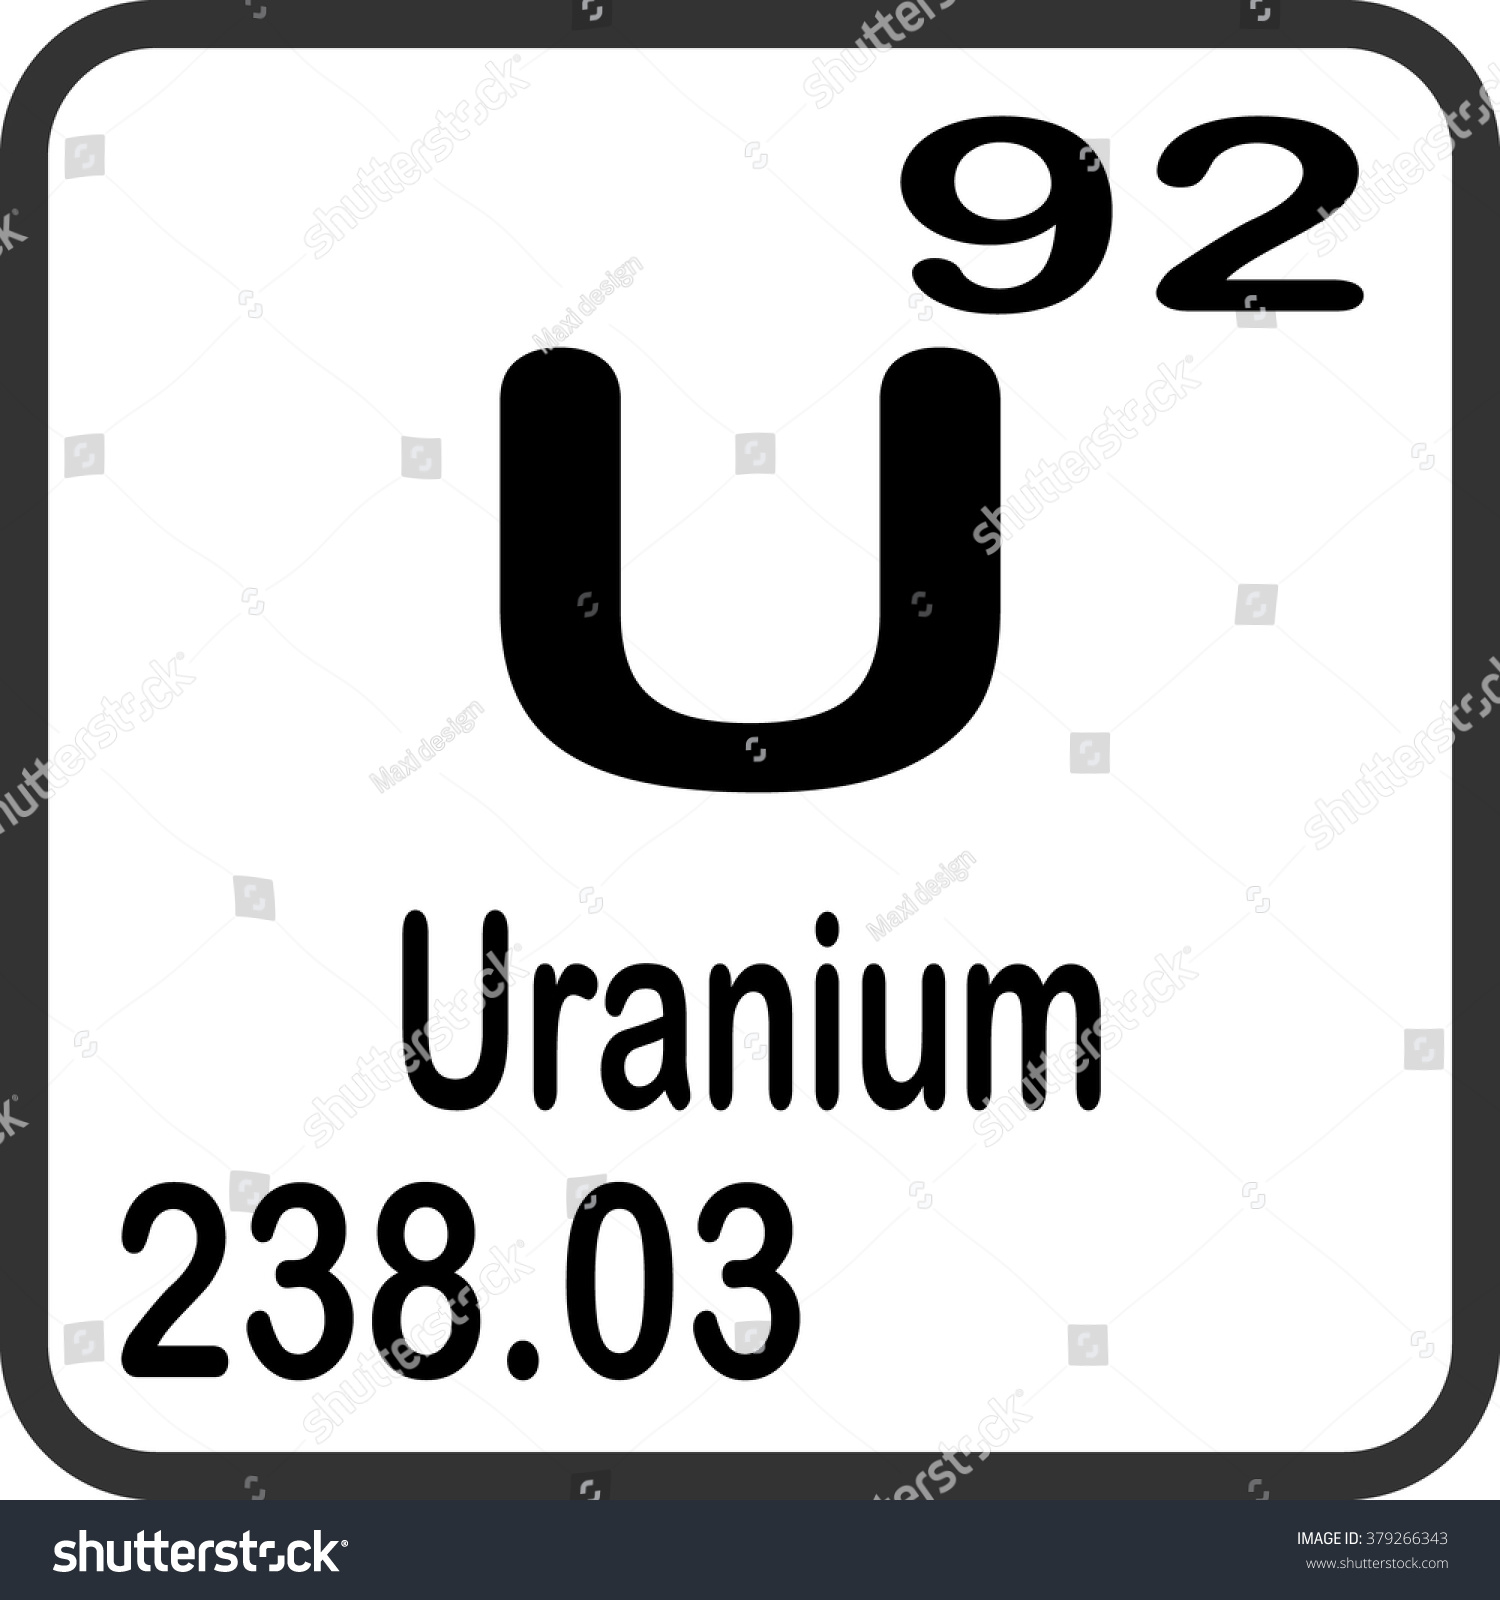 Periodic table elements uranium stock vector 379266343 shutterstock periodic table of elements uranium gamestrikefo Image collections